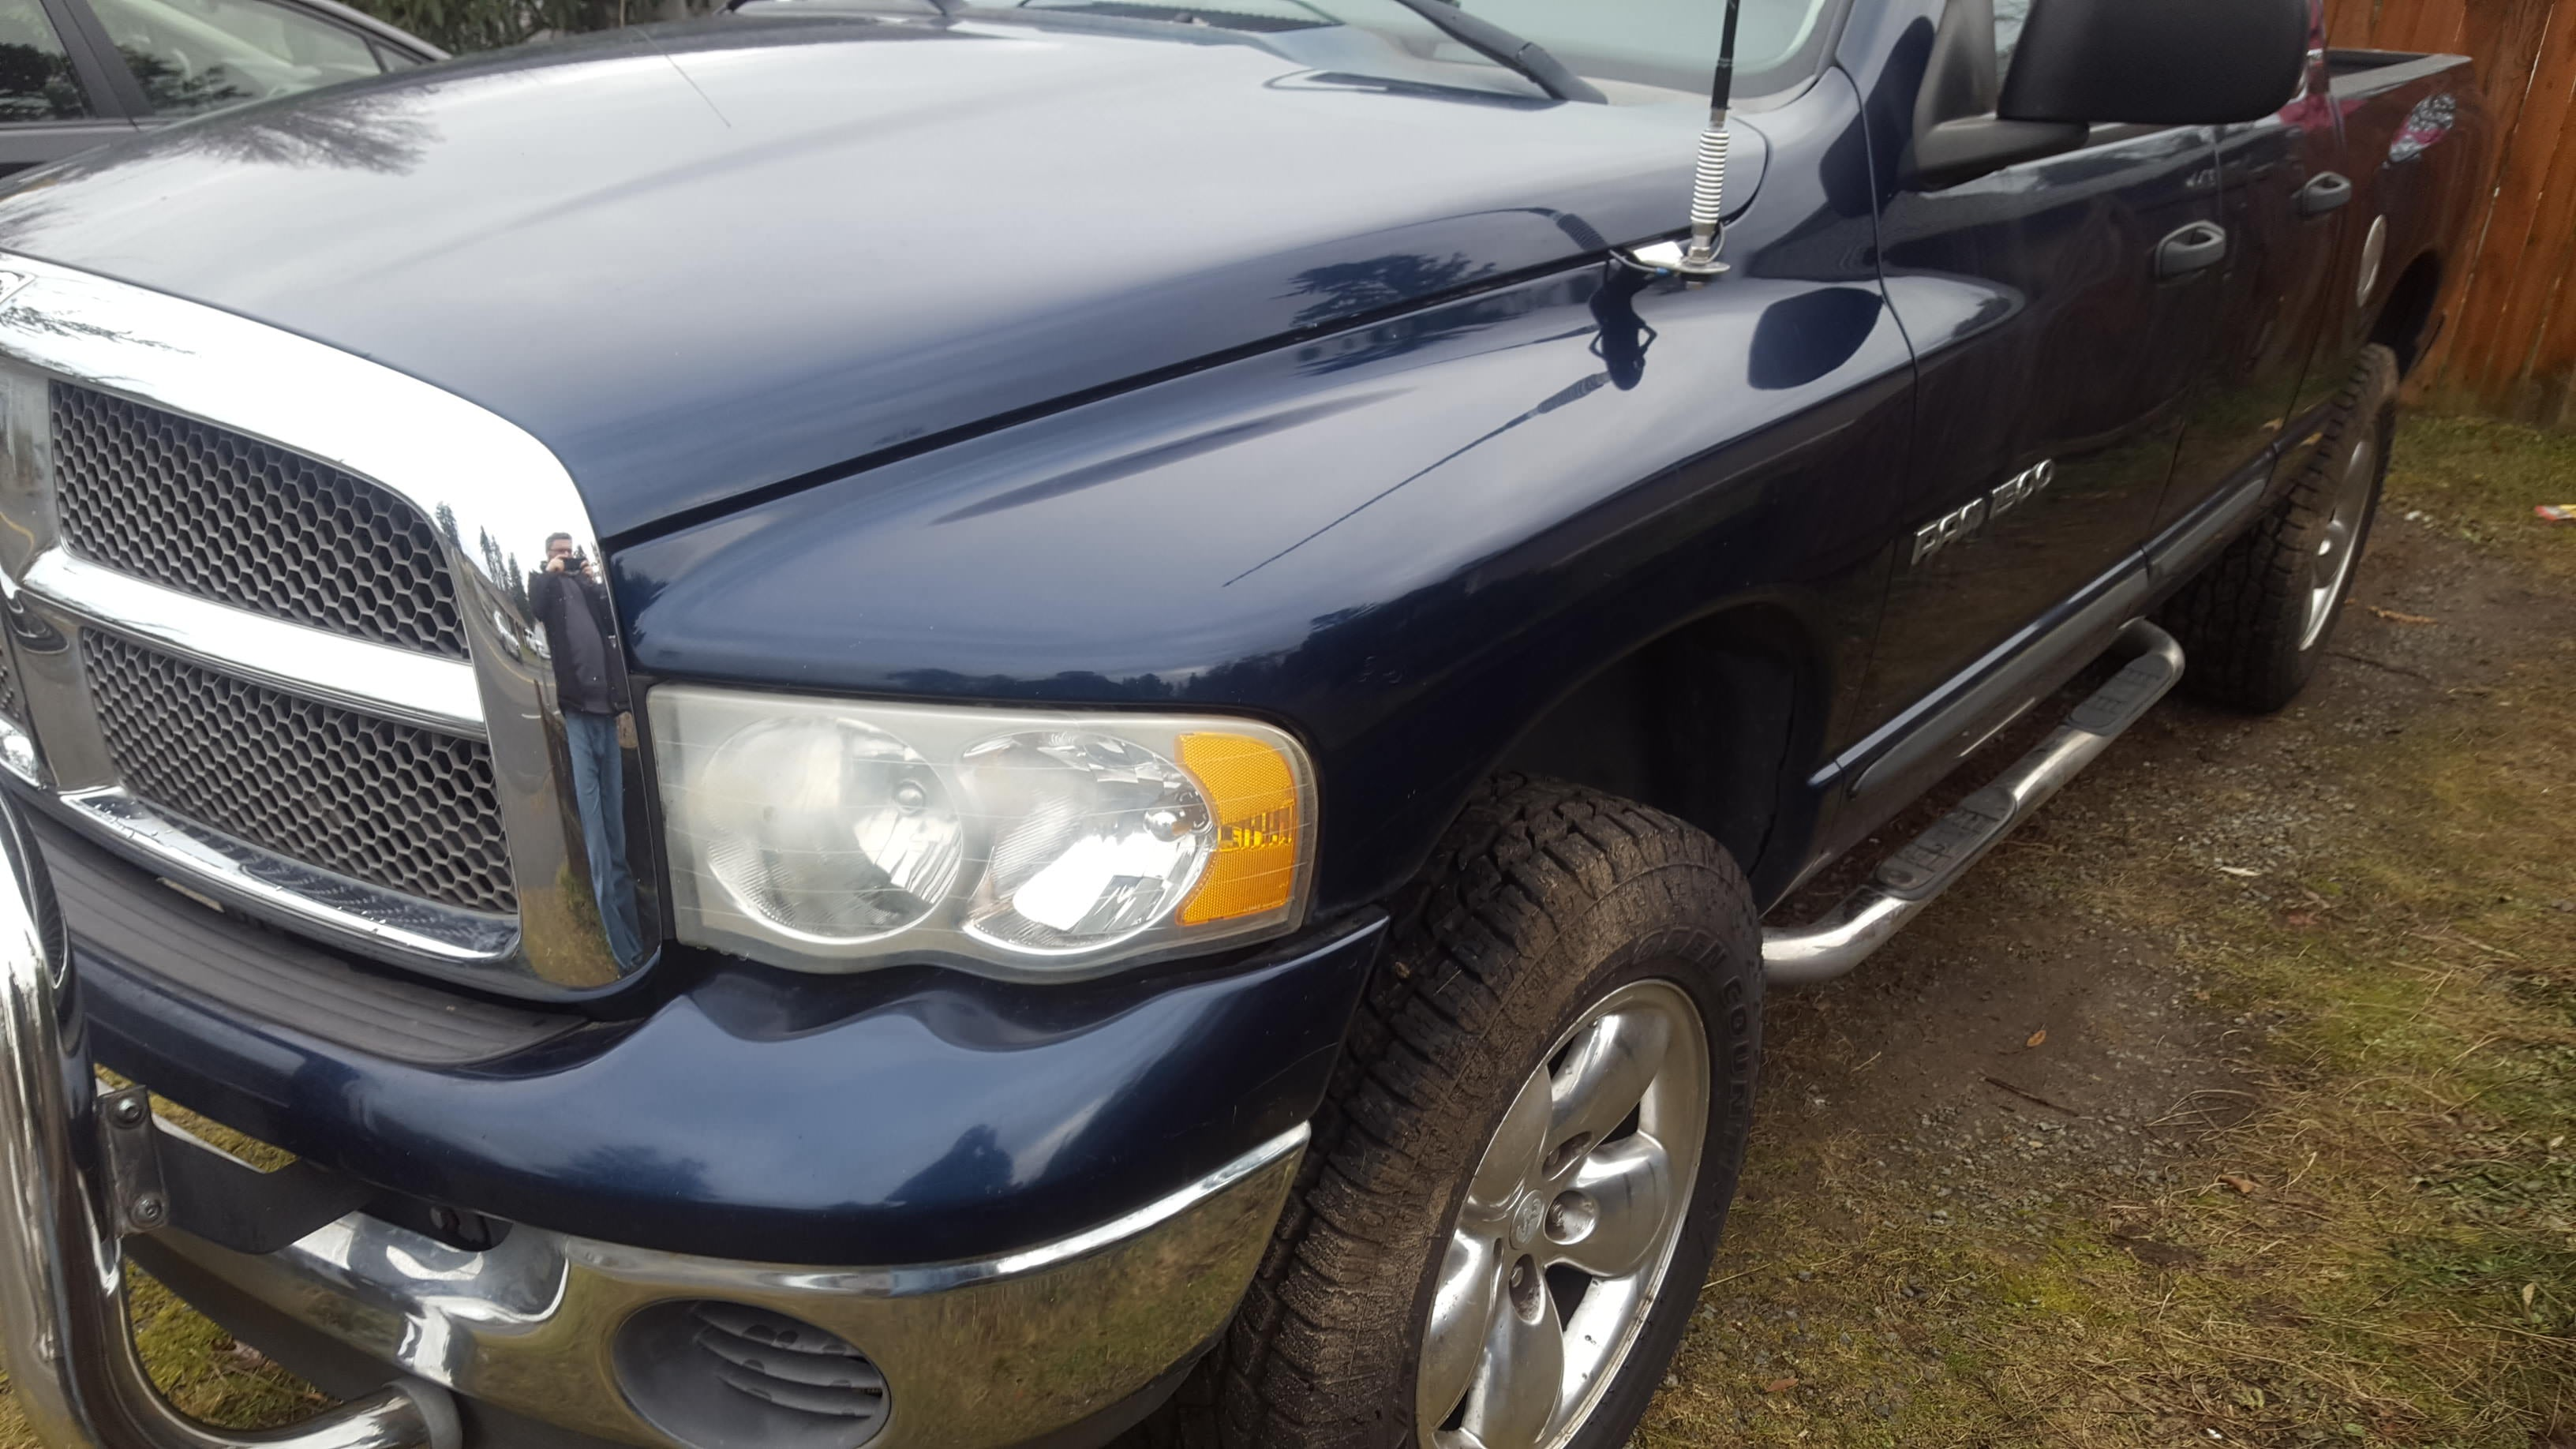 Junk 2002 Dodge RAM 1500 in Mountlake Terrace